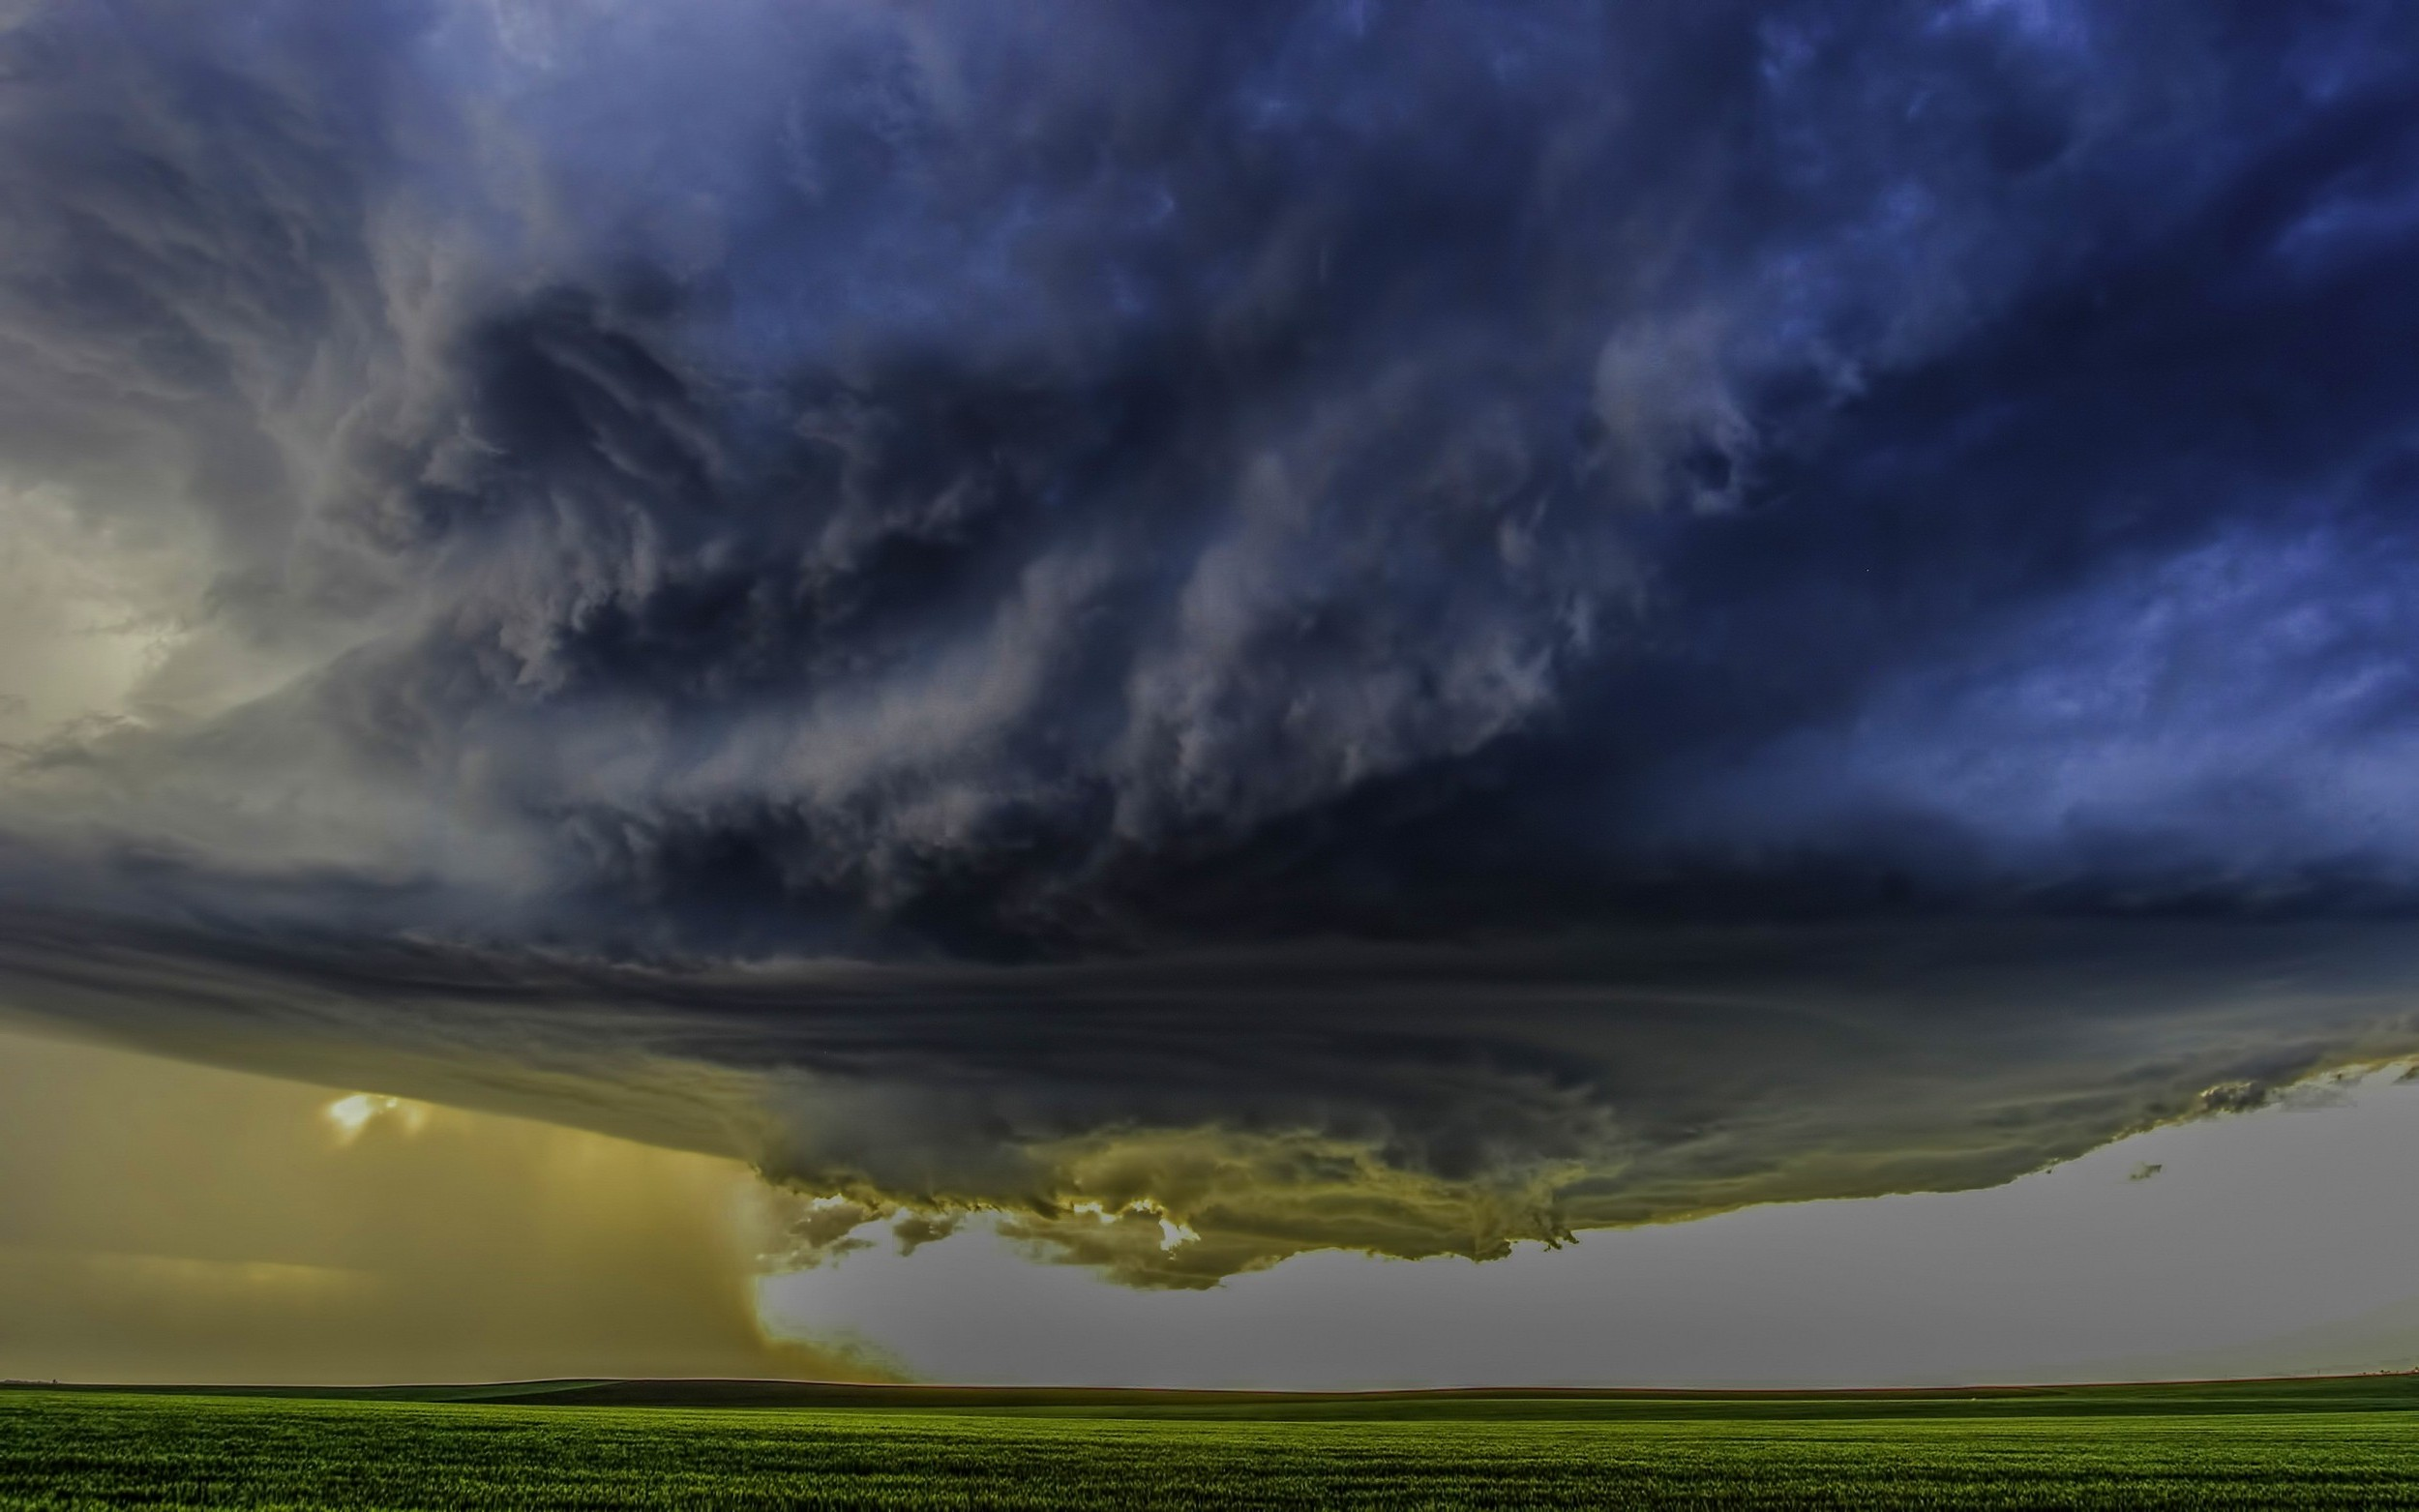 nature Landscape Supercell Storm Clouds Field Wind 2500x1563